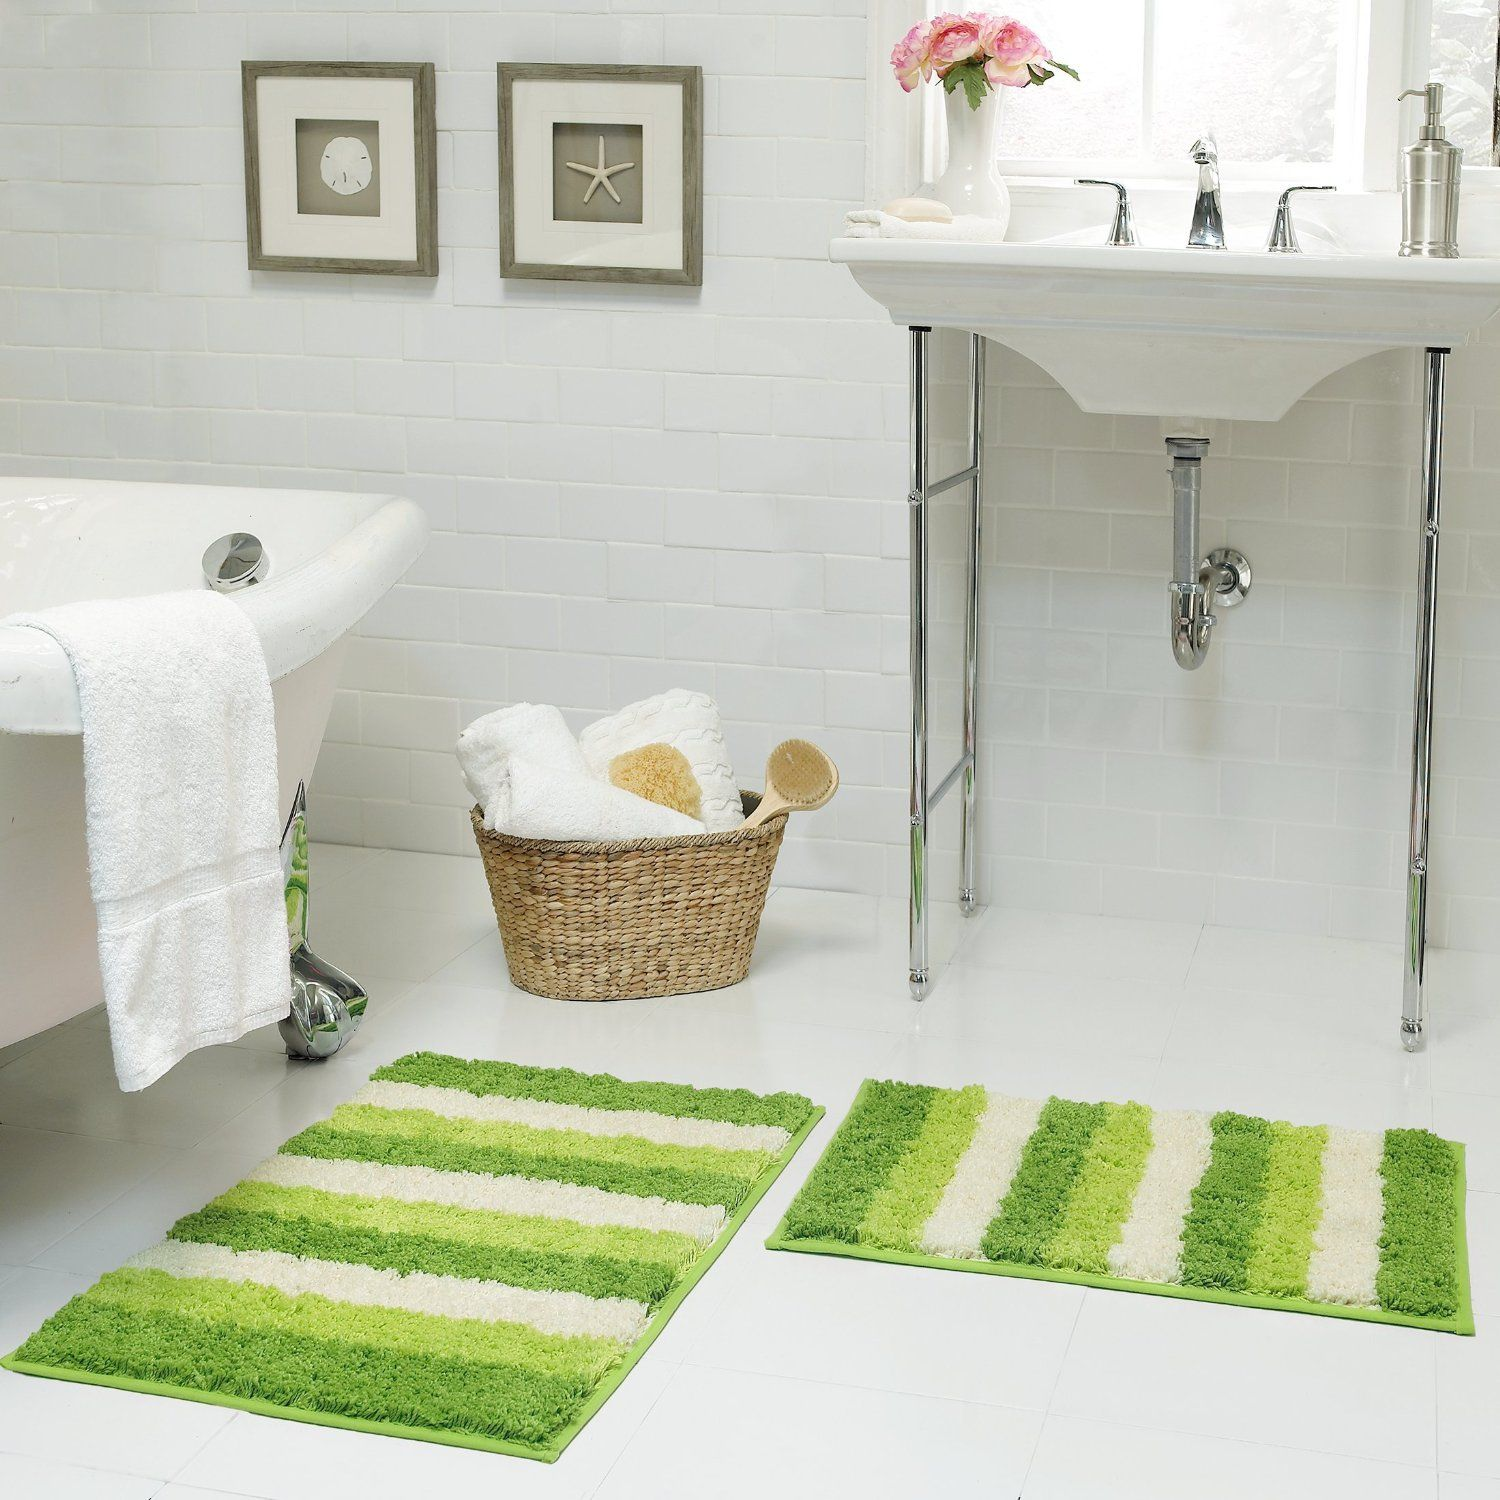 lime green bath mats with stripes